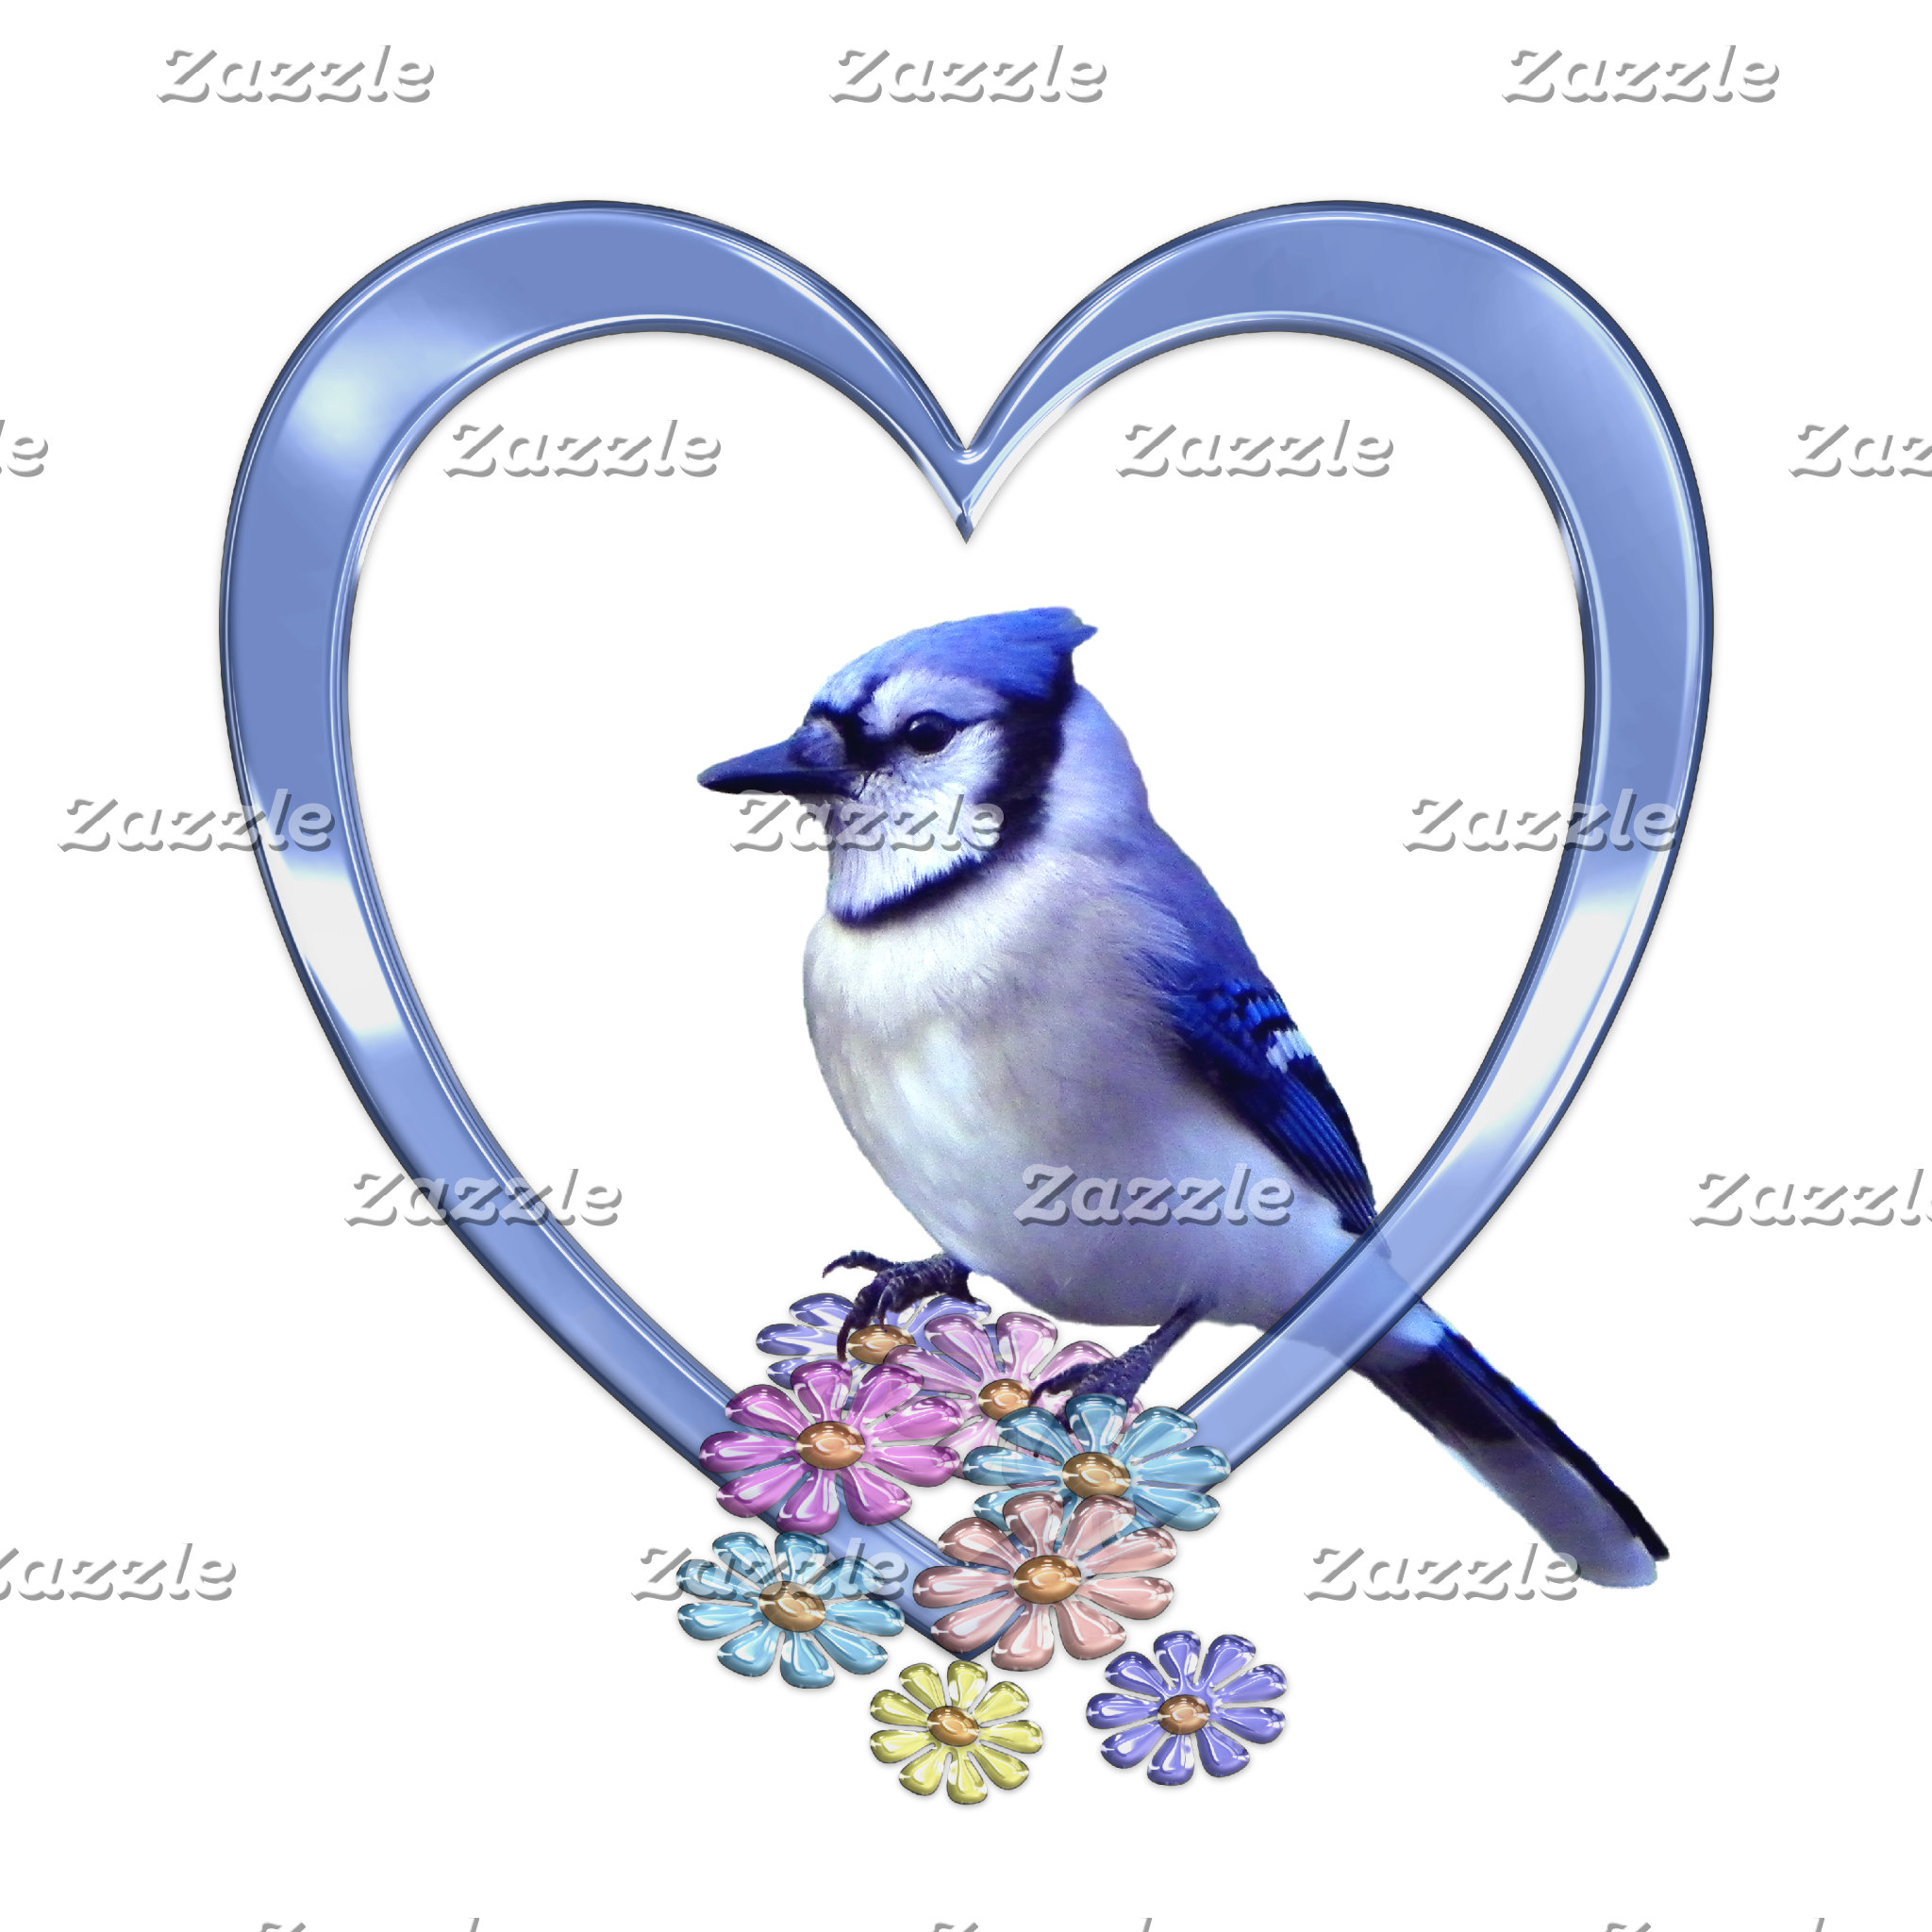 Blue Jay in Heart